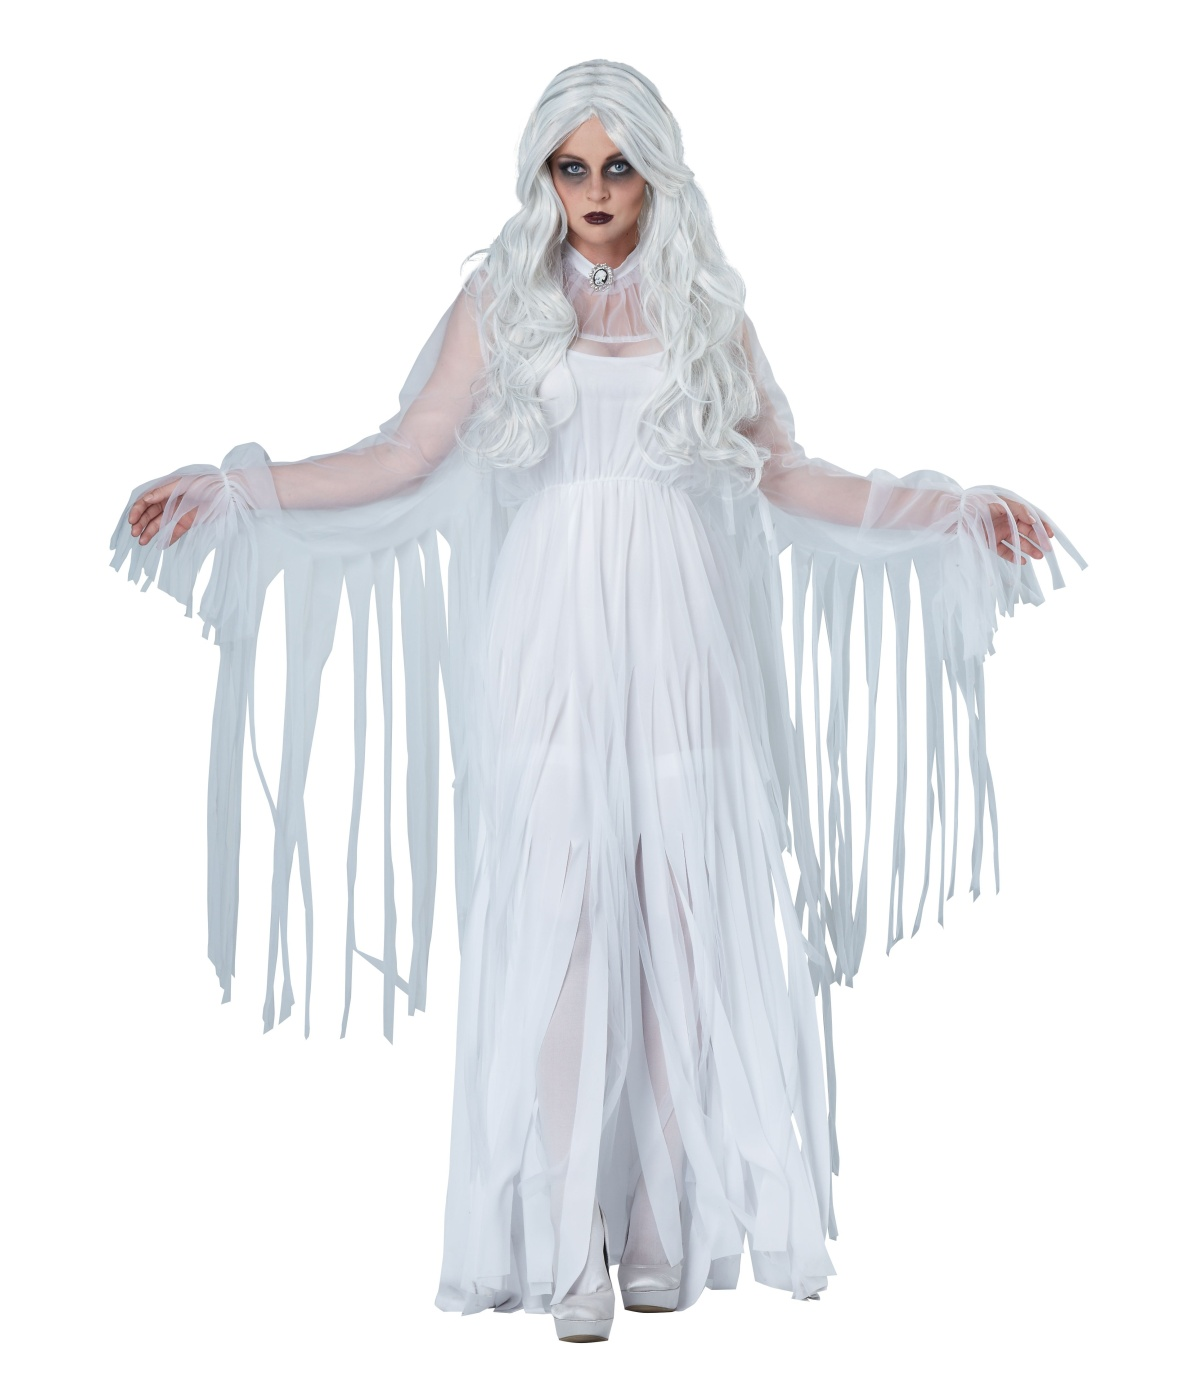 Ghostly Spirit Womens Costume  sc 1 st  Wonder Costumes & Ghostly Spirit Womens Costume - Scary Costumes